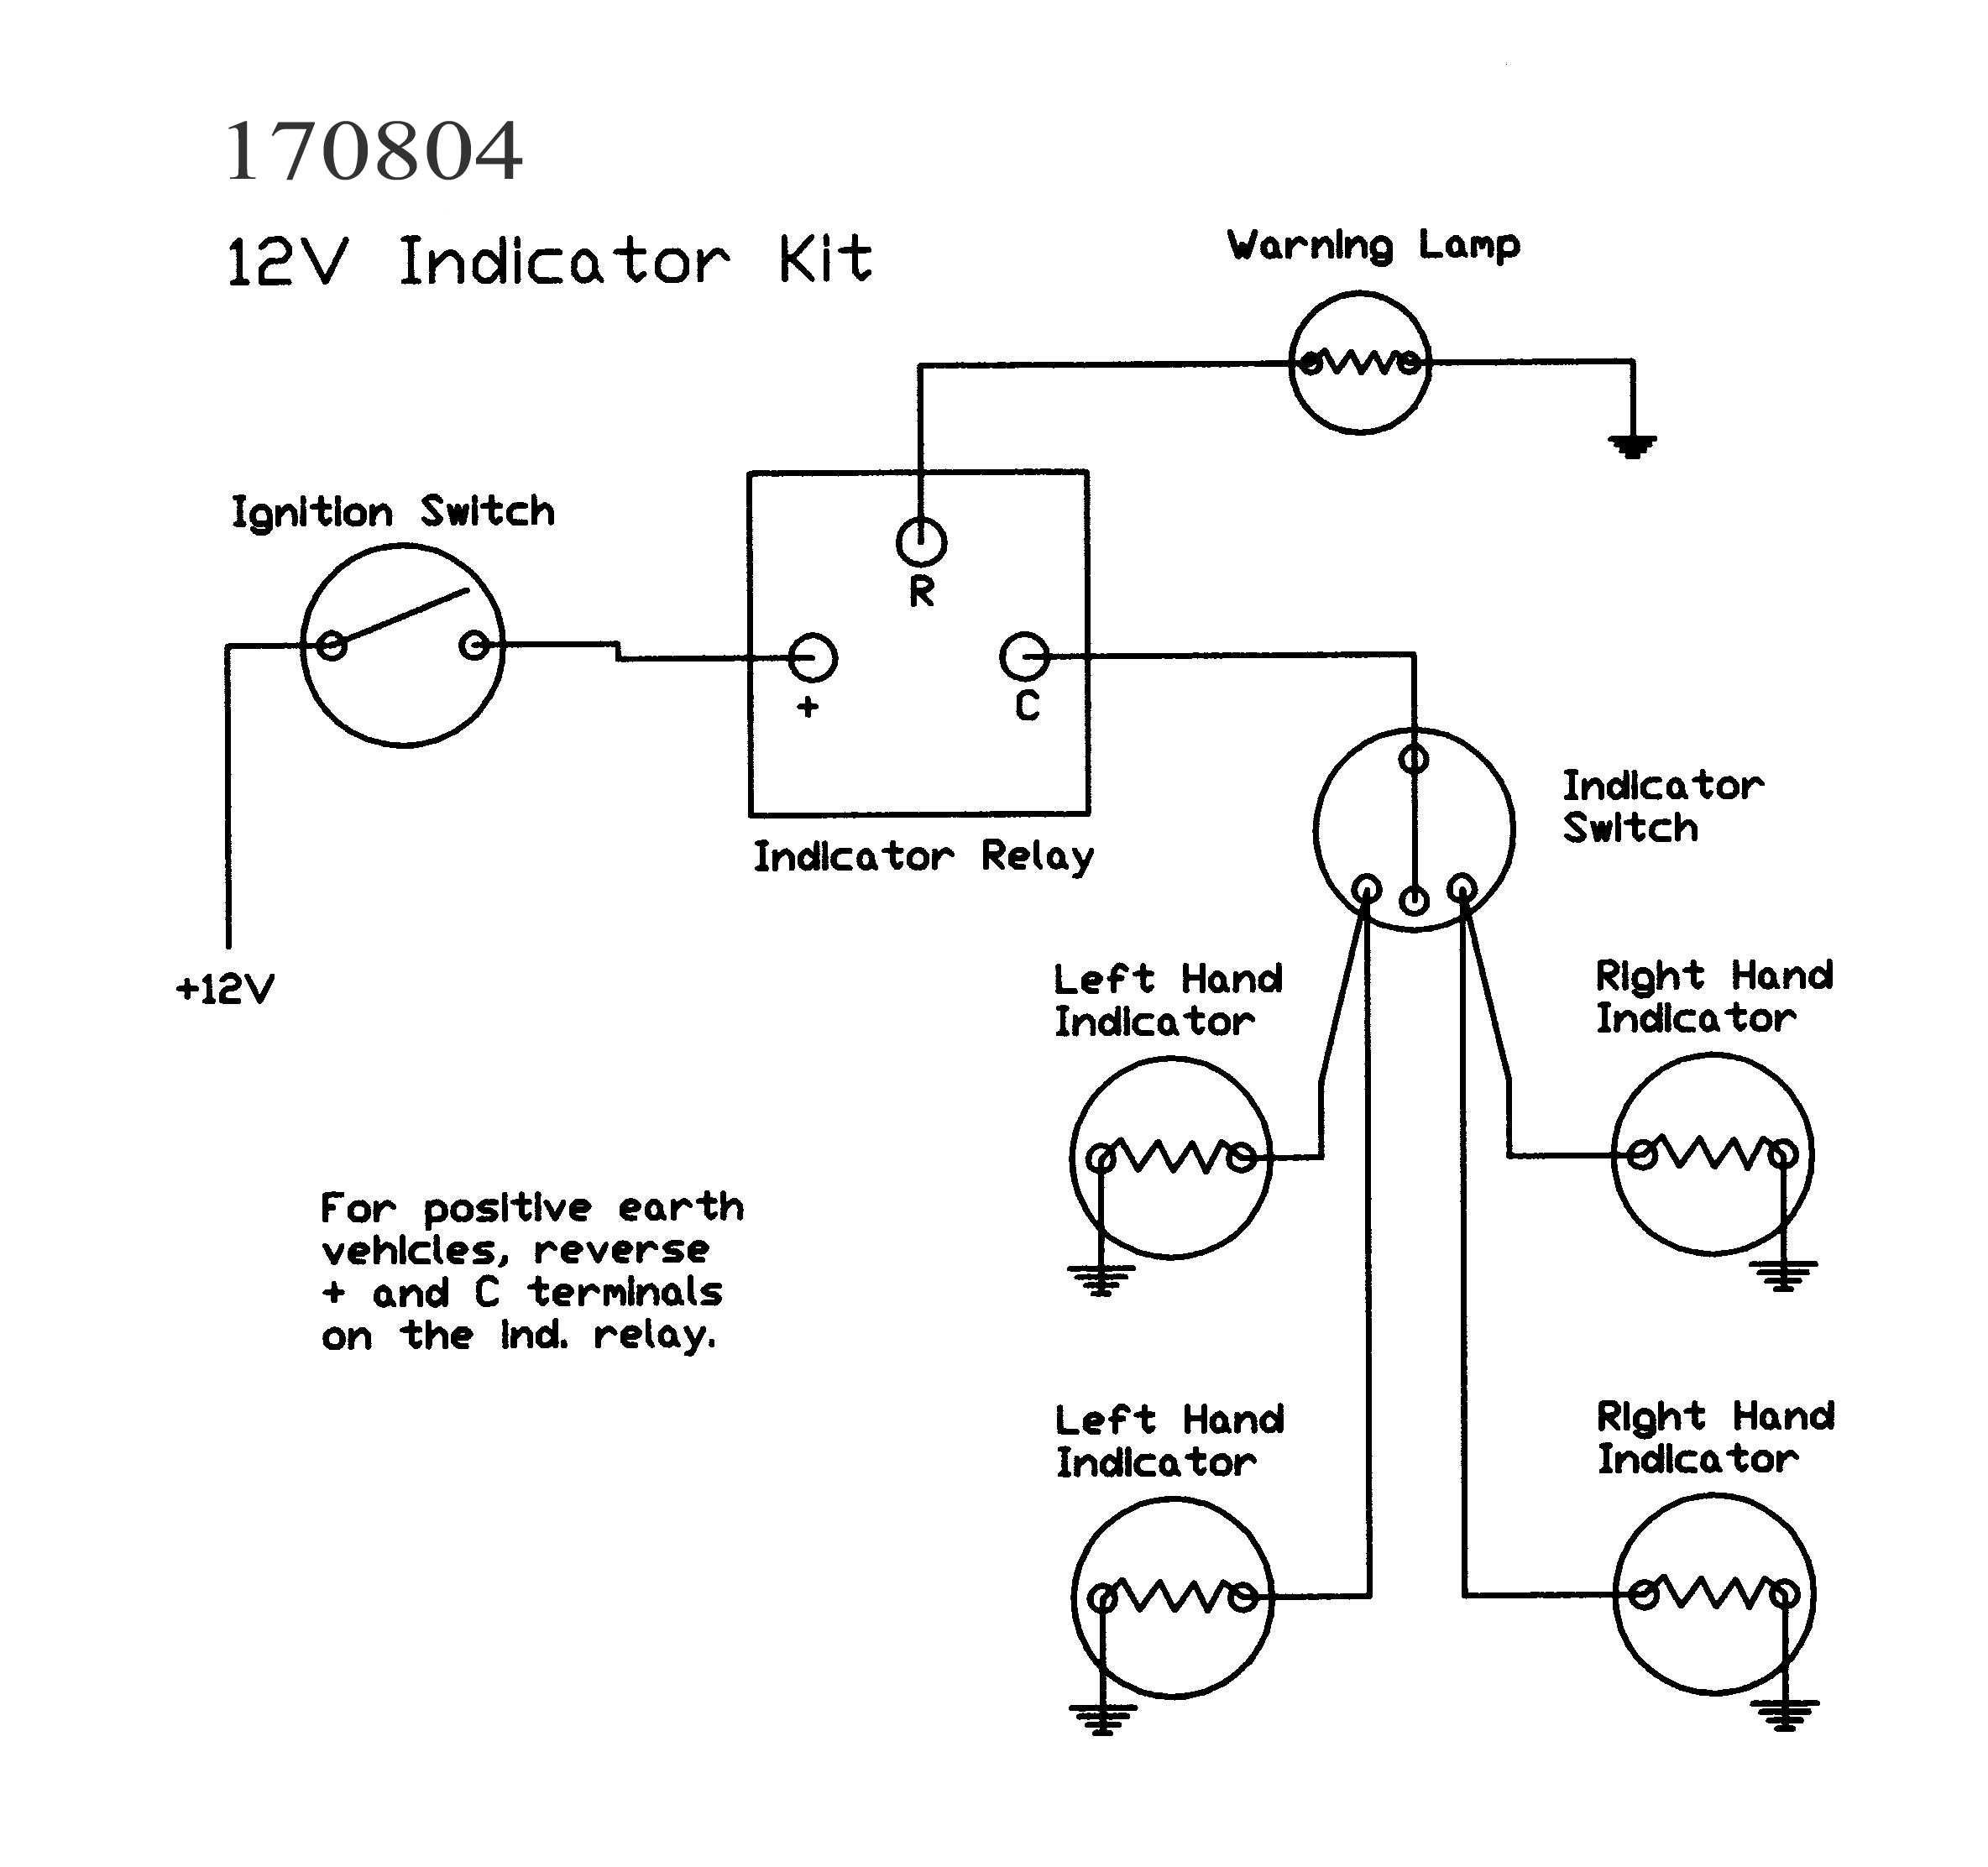 170804_(12v)_schematic indicator kits (without lamps) indicator wiring diagram at soozxer.org